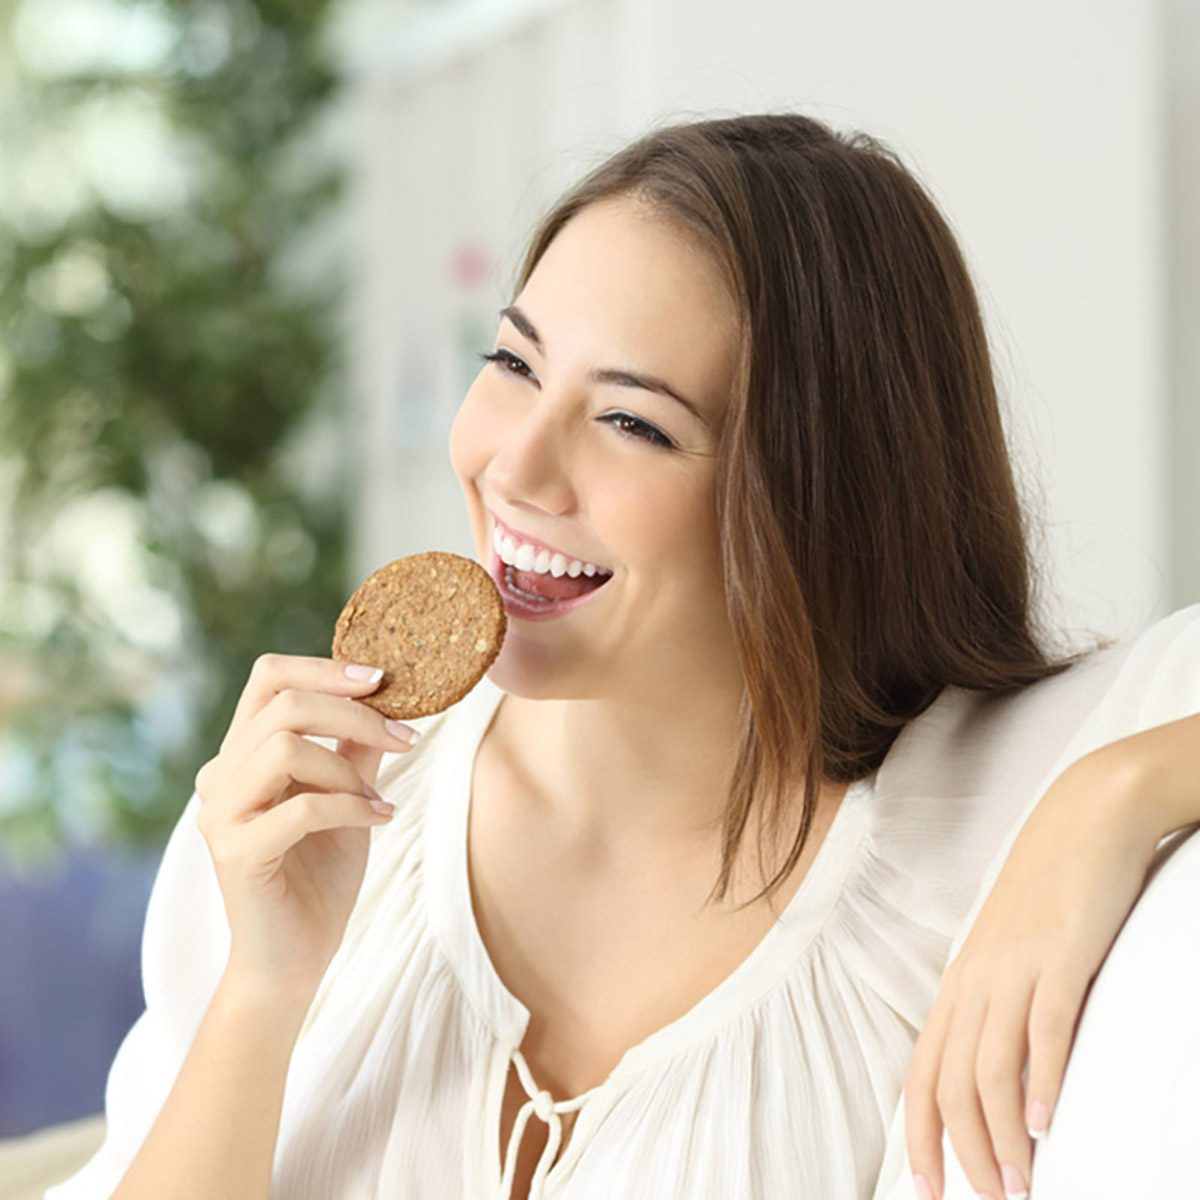 Happy girl eating a dietetic cookie sitting on a couch at home